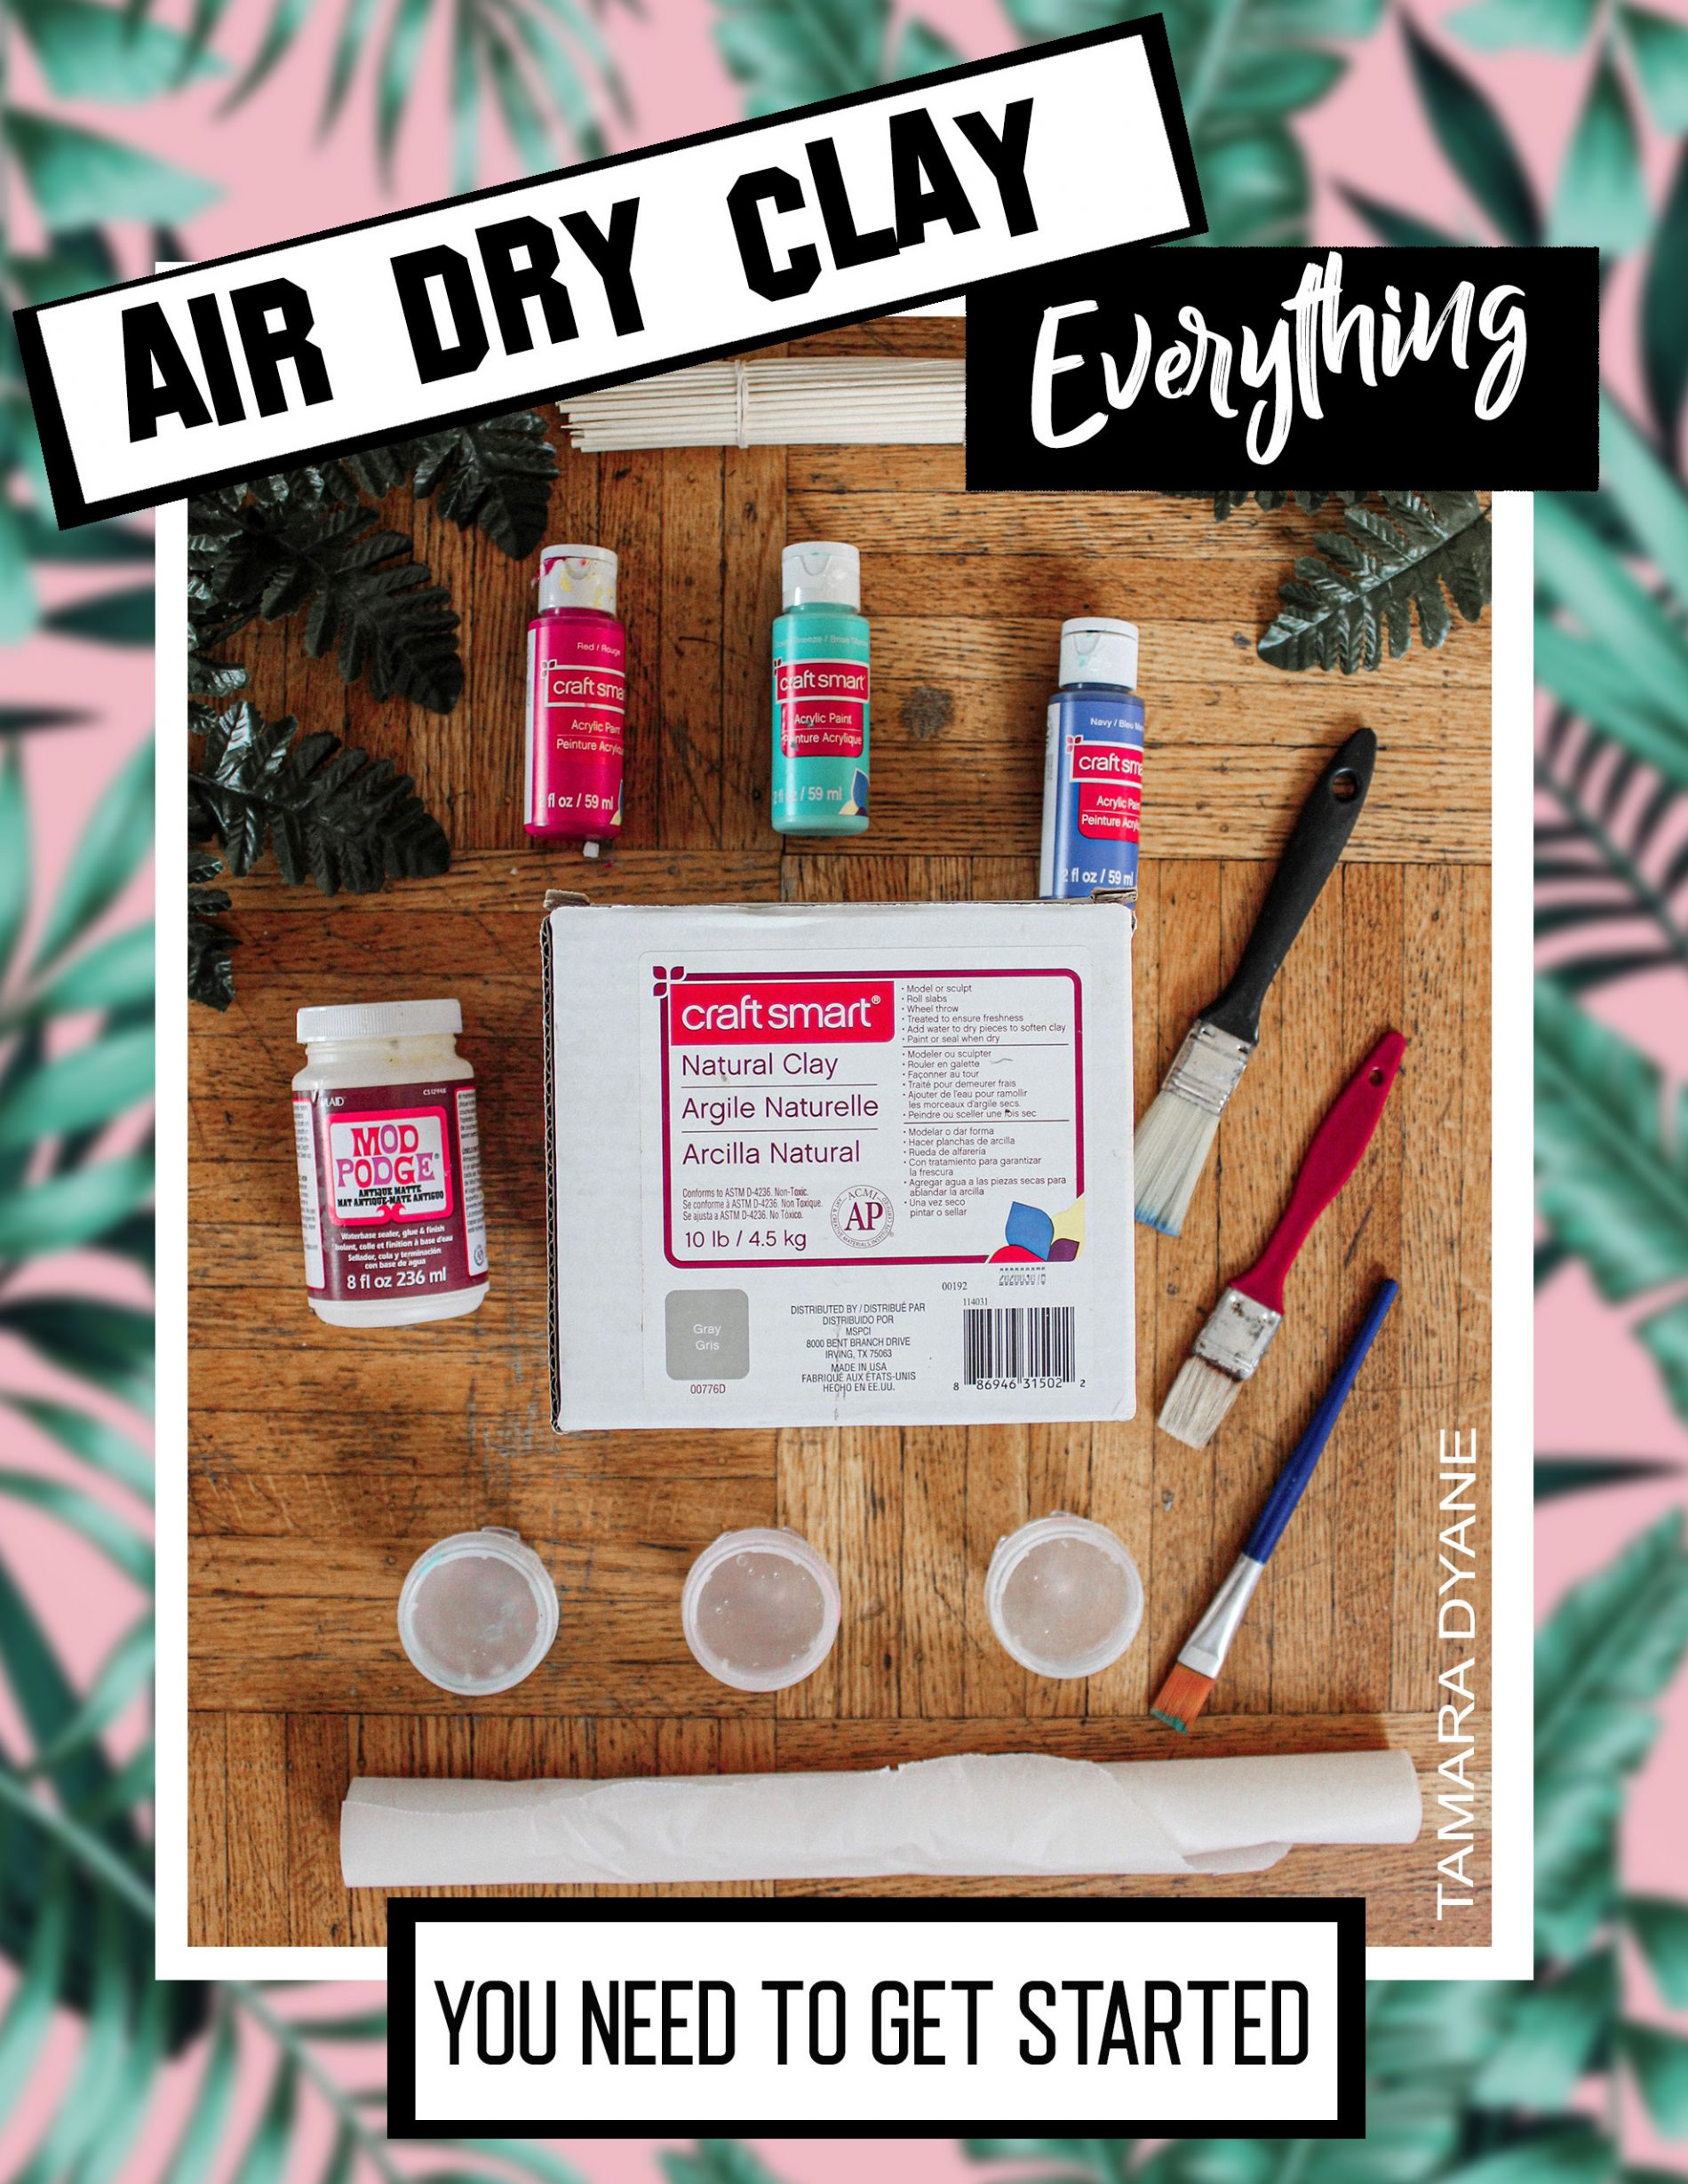 AIR DRY CLAY: Everything you need to get started. v